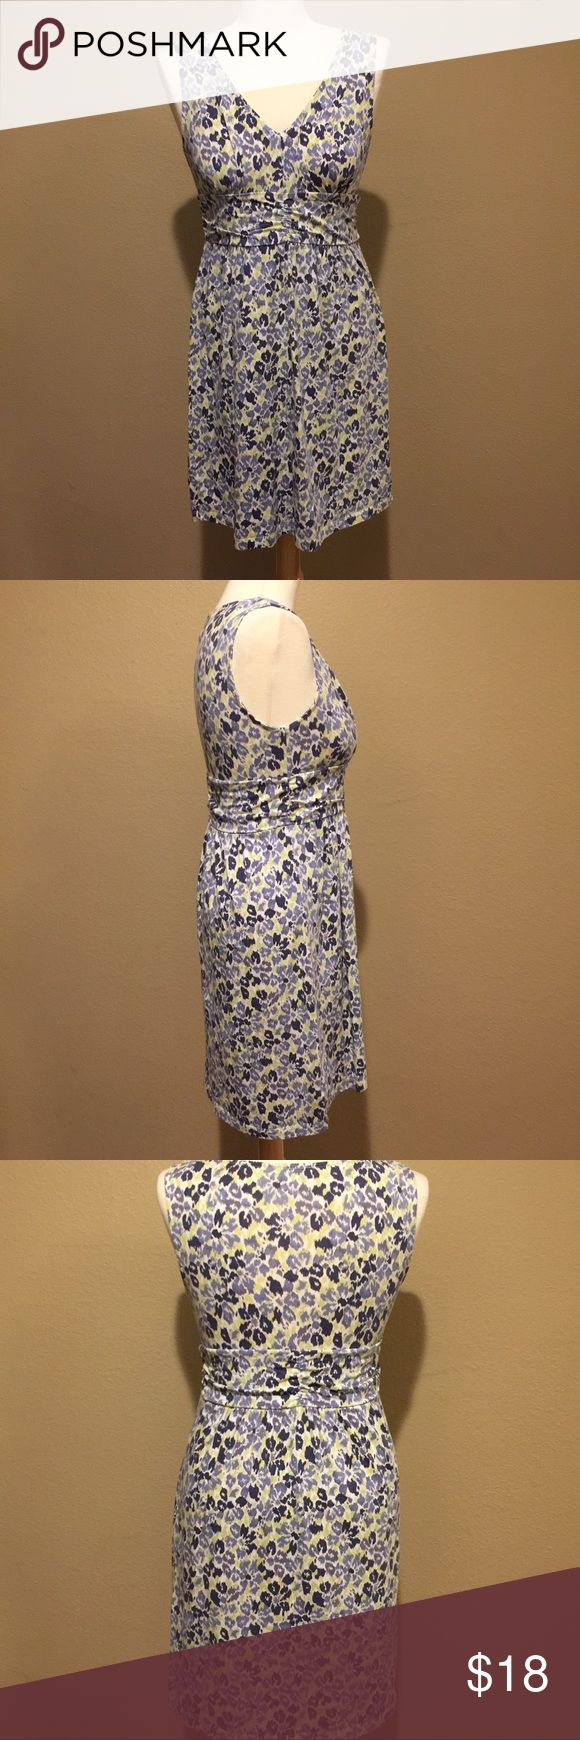 Ann Taylor Loft Sweet and Soft Floral Dress Sweet little dress by Ann Taylor Loft! Perfect for upcoming spring! Great Sunday weekend dress! Soft and stretchy makes this extra comfortable while looking great! Gently used. Very figure flattering! LOFT Dresses